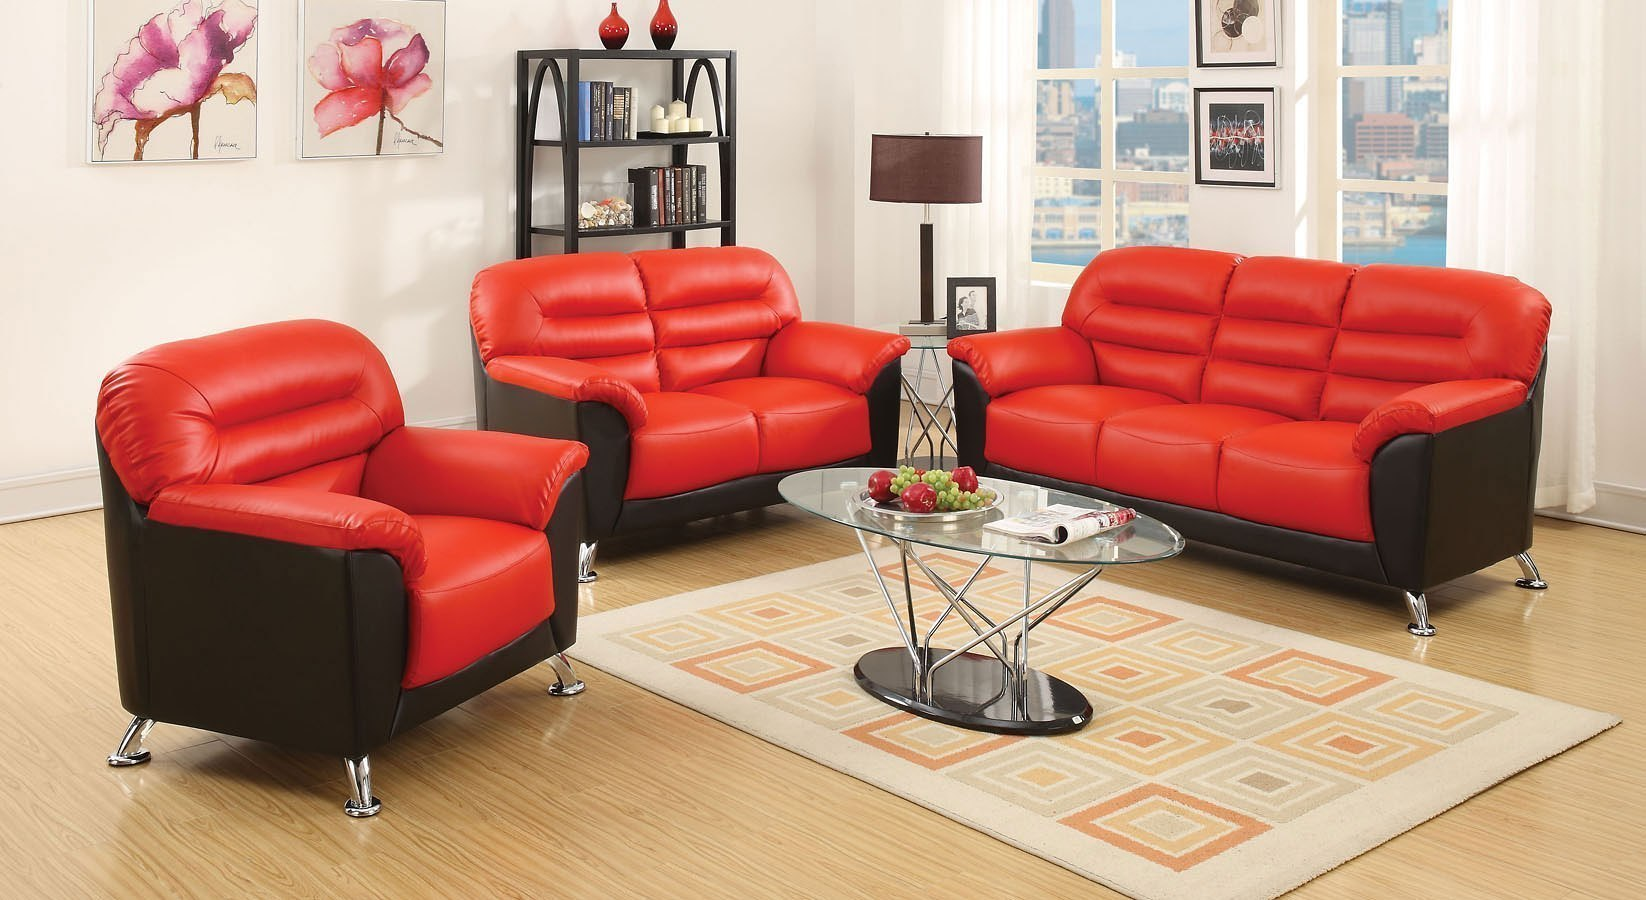 Sibba Living Room Set (Red/Black) Acme Furniture | Furniture Cart